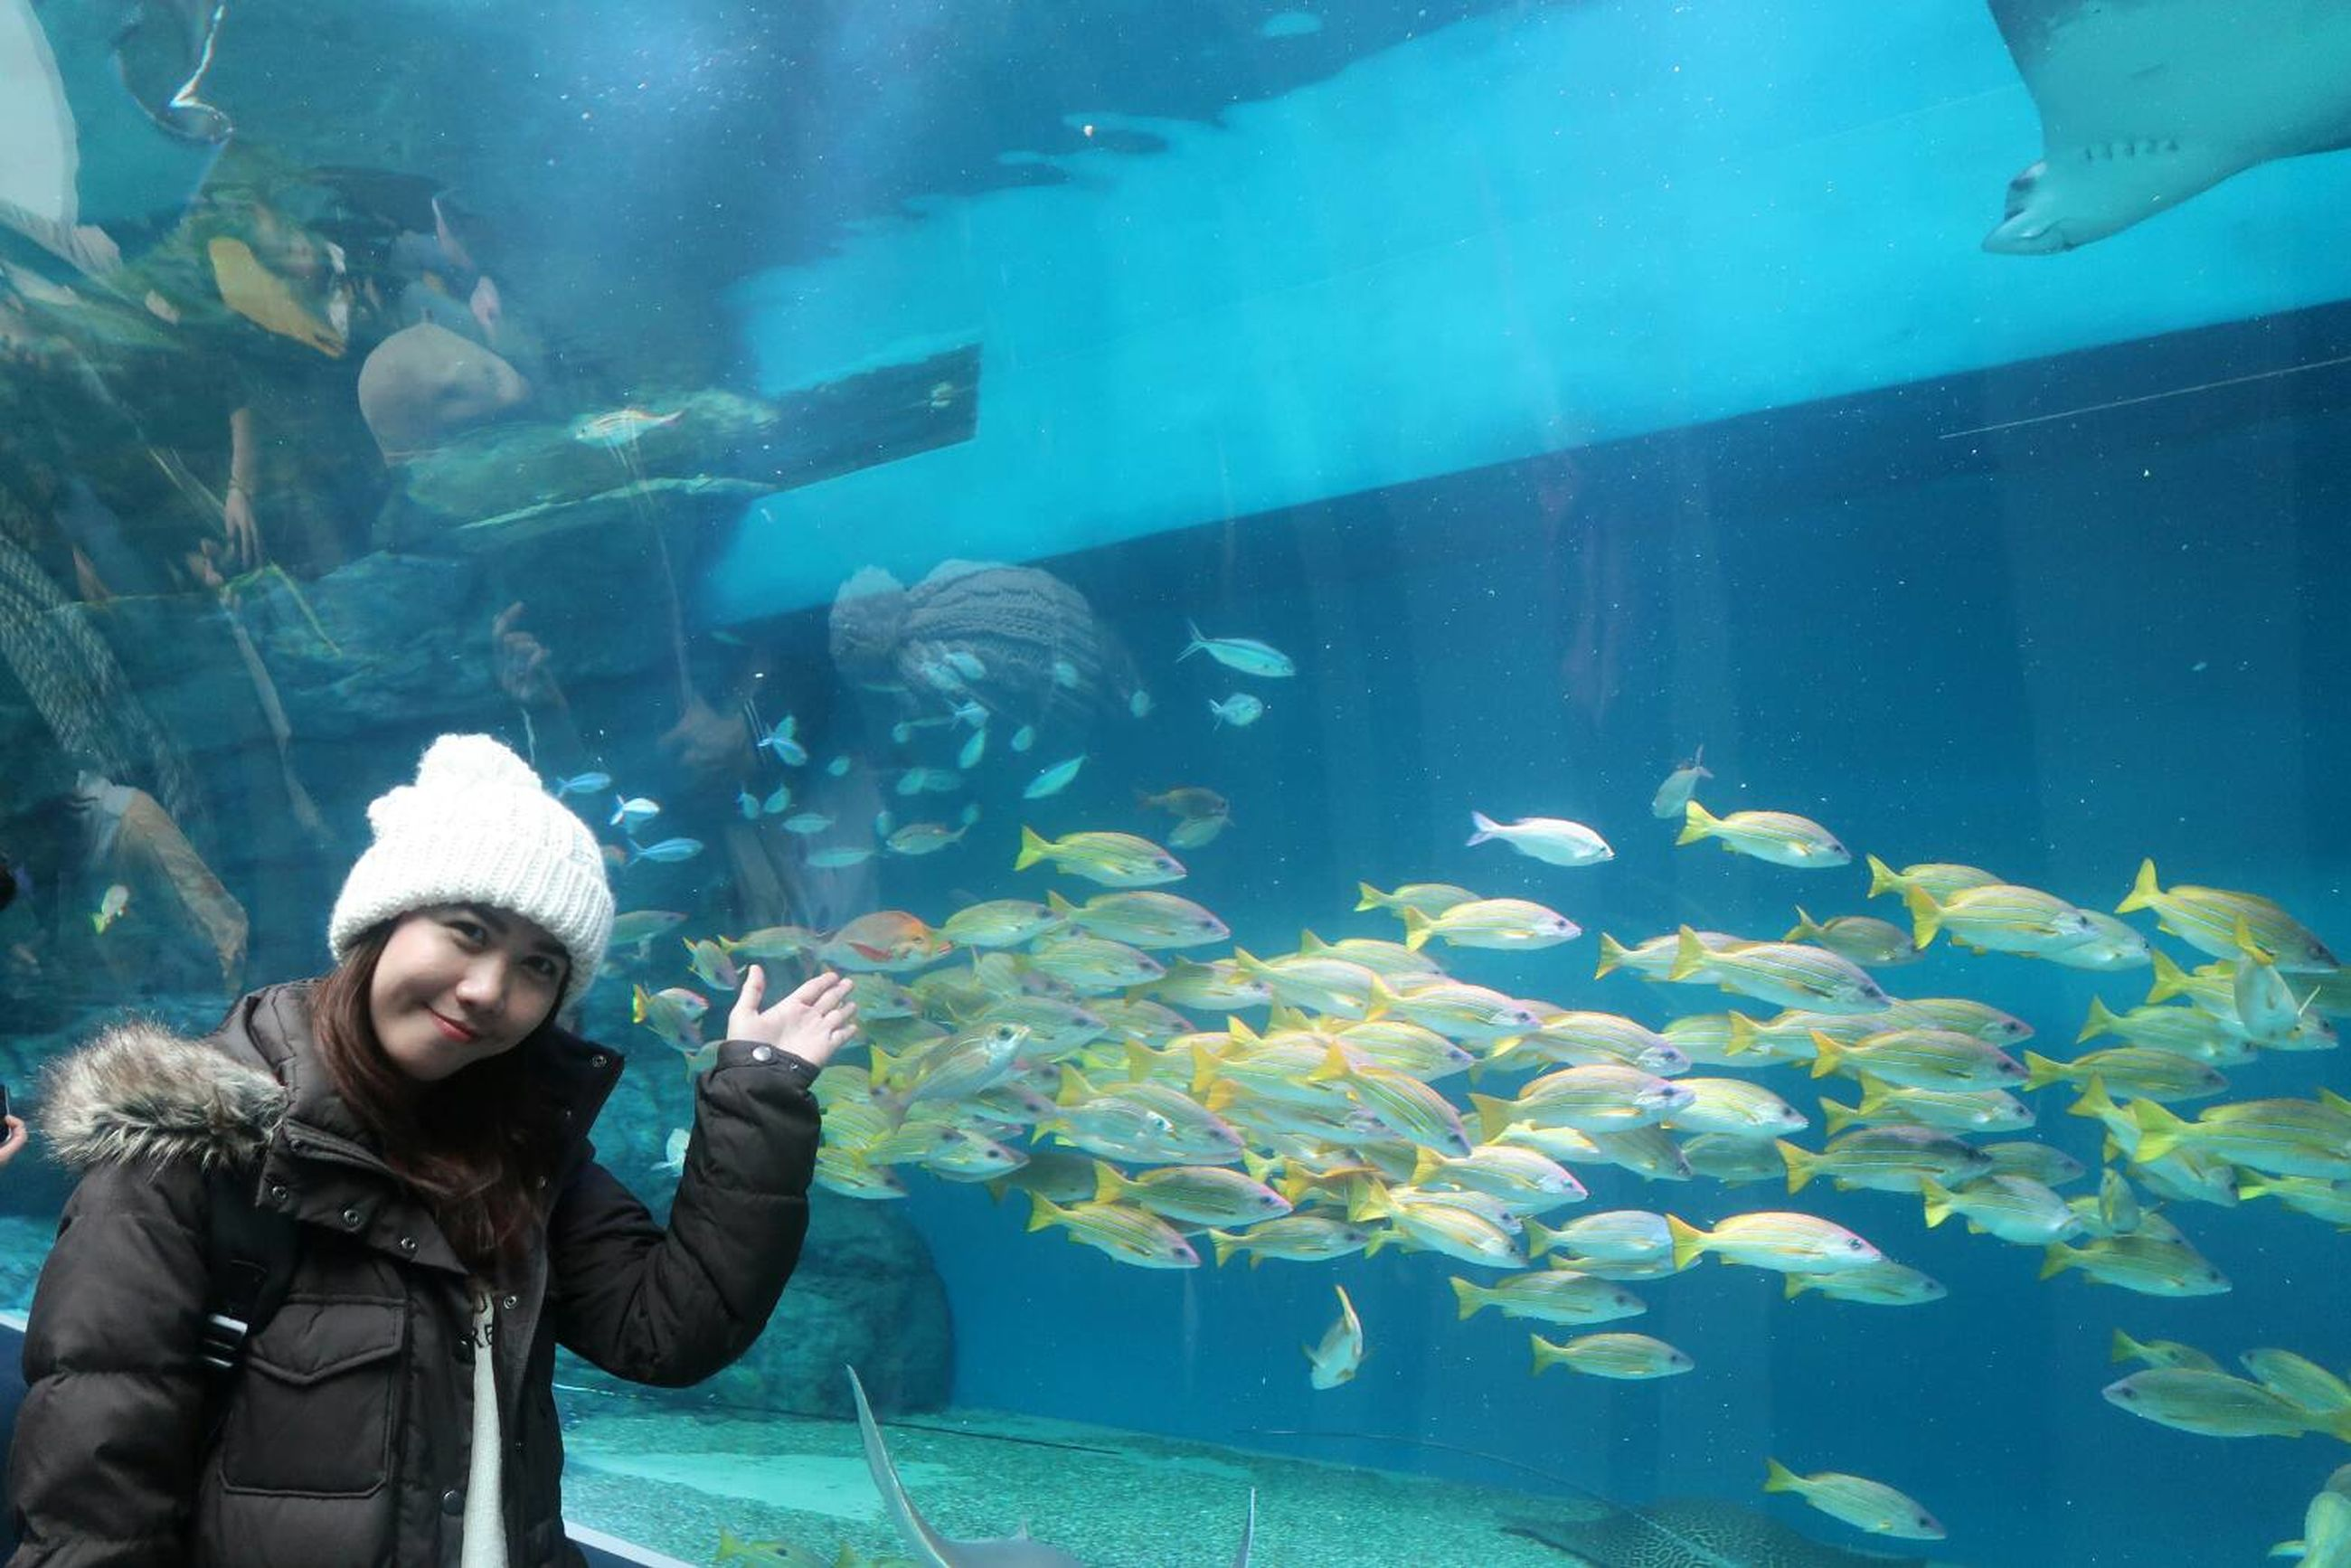 underwater, animal themes, water, fish, vertebrate, animal, sea, animal wildlife, animals in the wild, group of animals, one person, real people, swimming, transparent, nature, animals in captivity, tank, large group of animals, sea life, glass - material, marine, outdoors, warm clothing, undersea